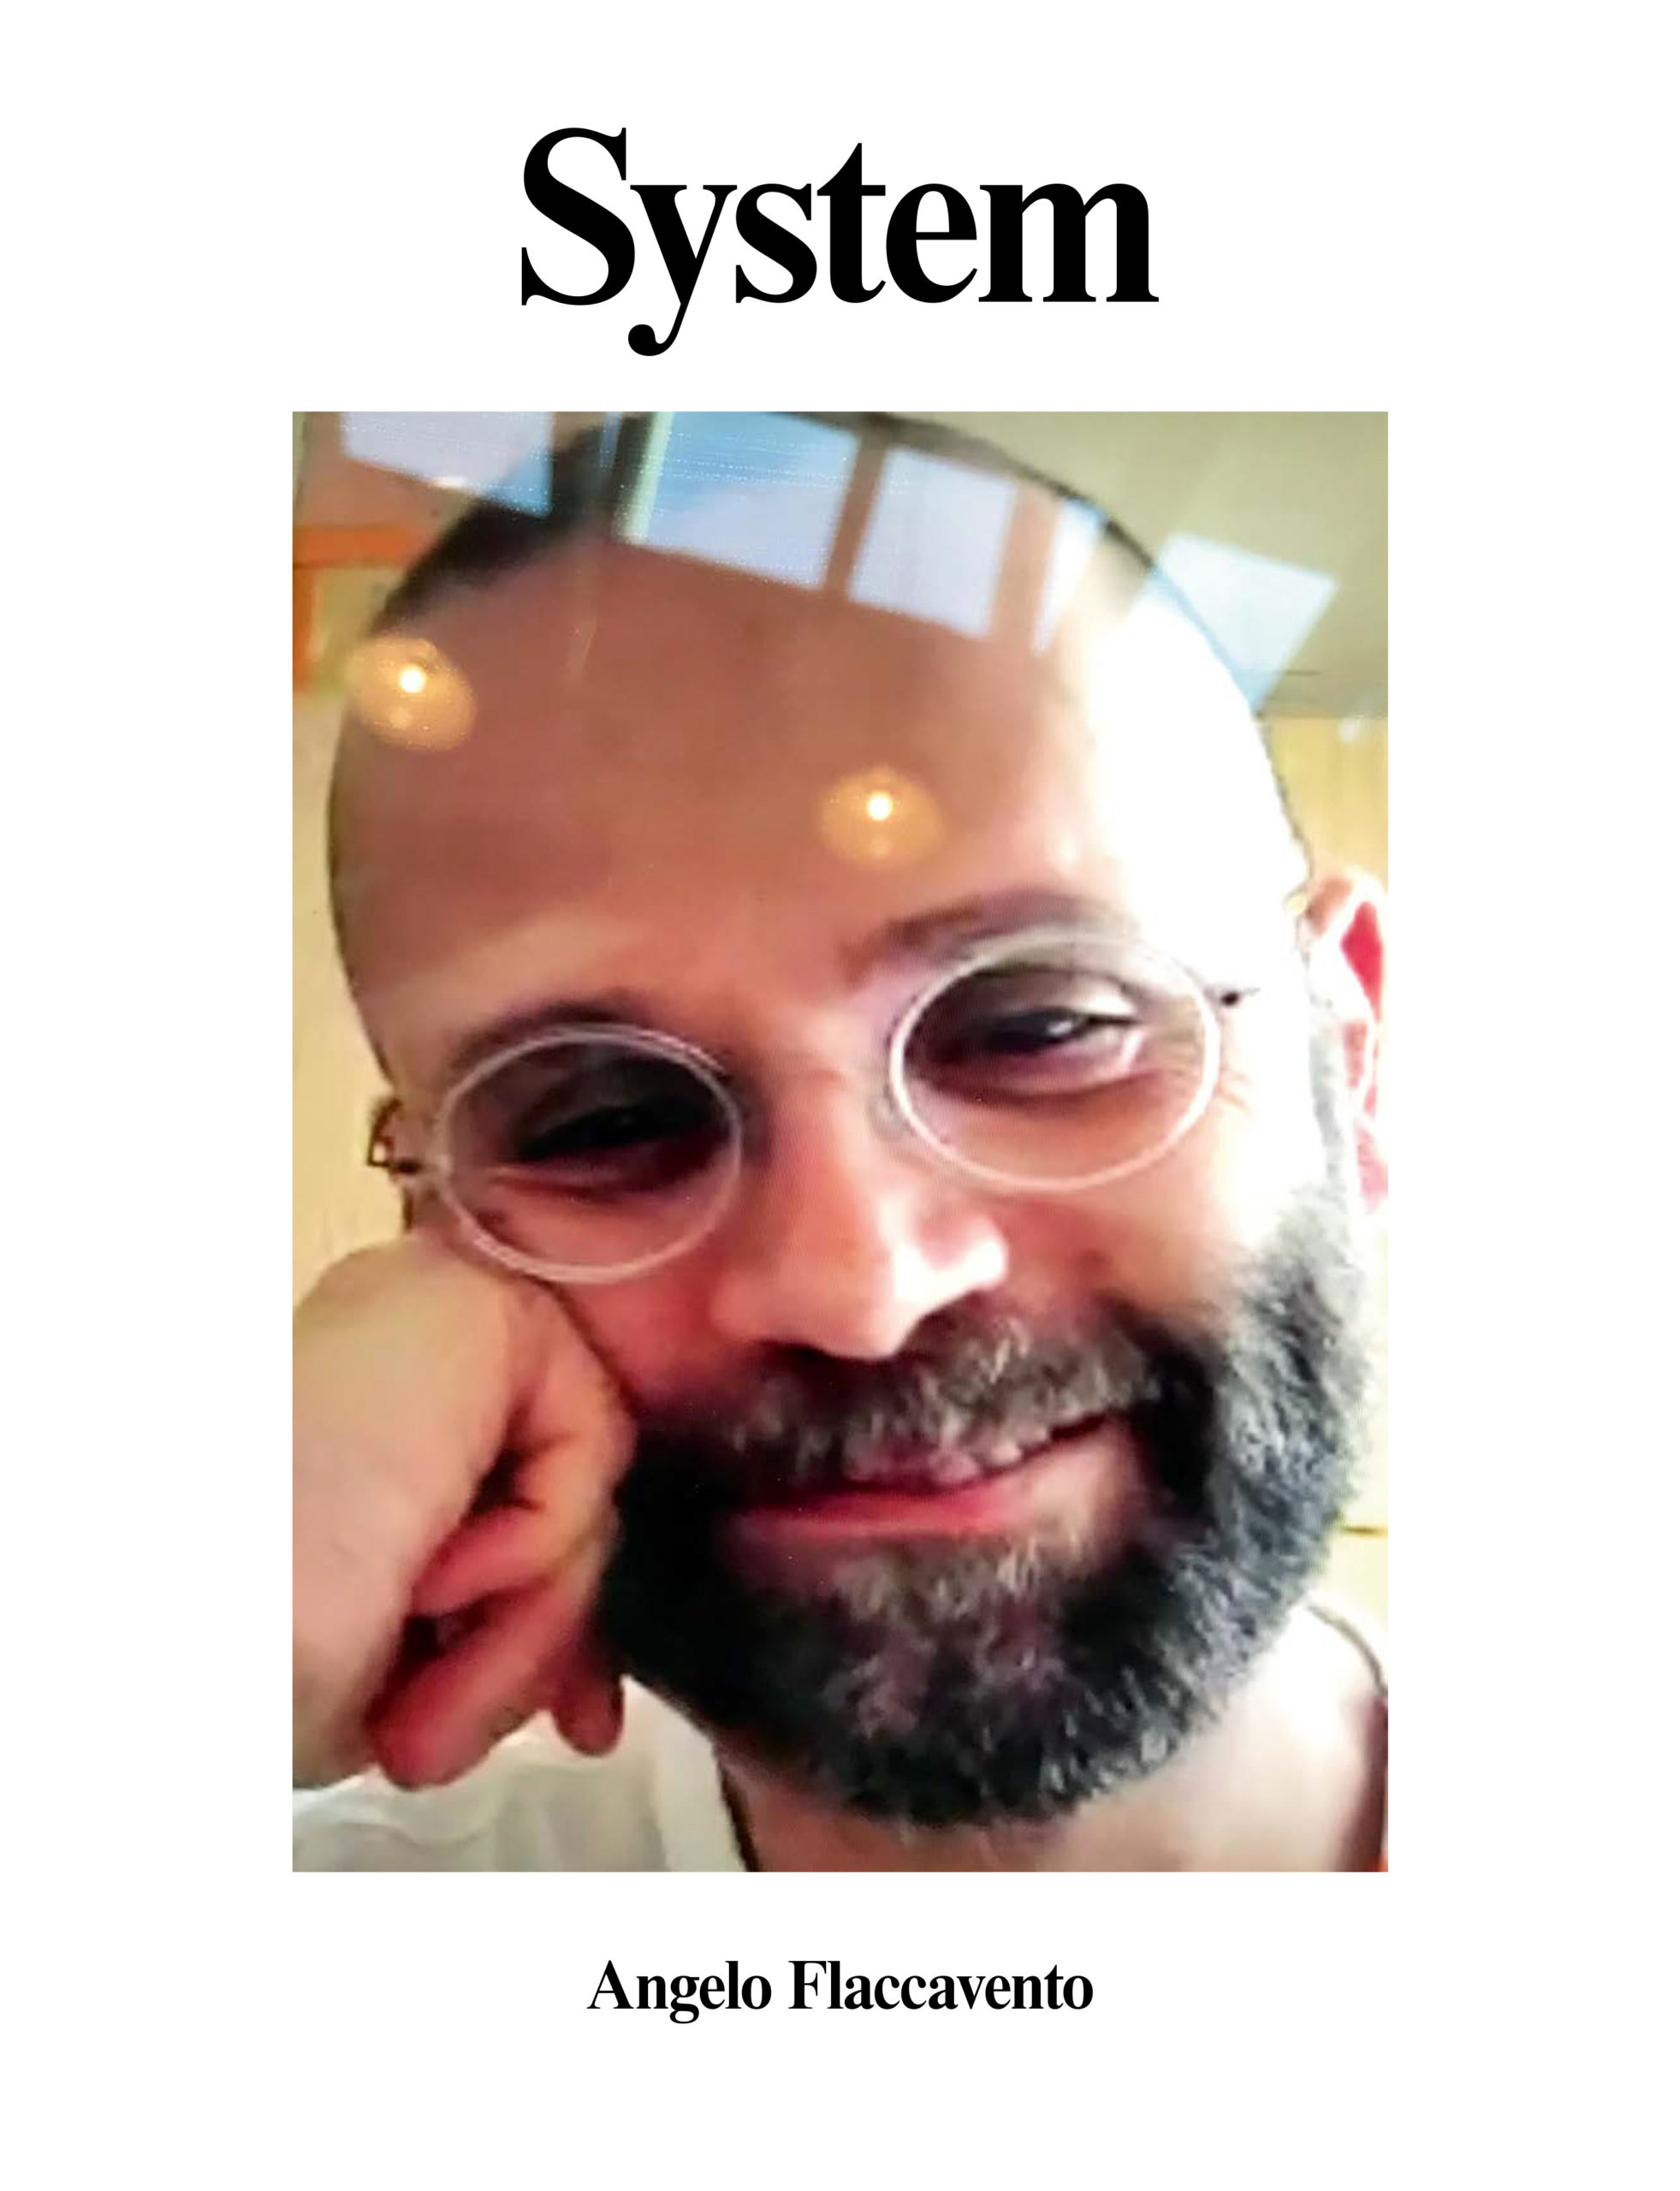 System Magazine Defys Lockdown with Blockbuster Issue